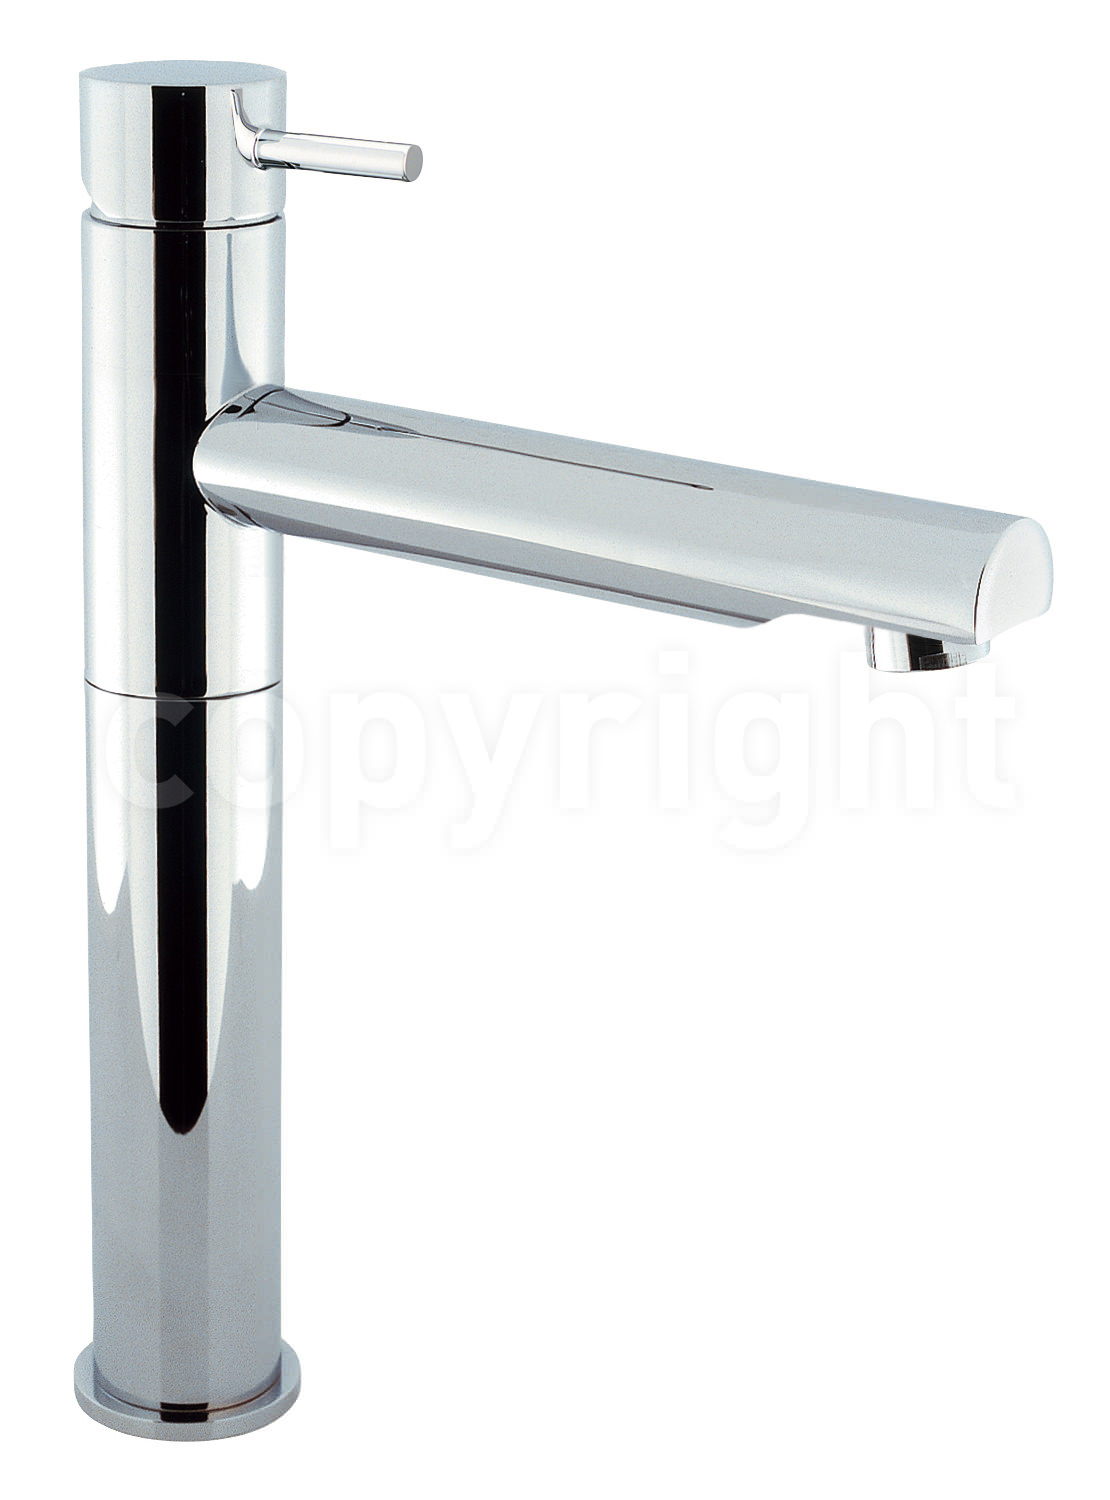 Crosswater Kai Lever Monobloc Swivel Spout Tall Basin